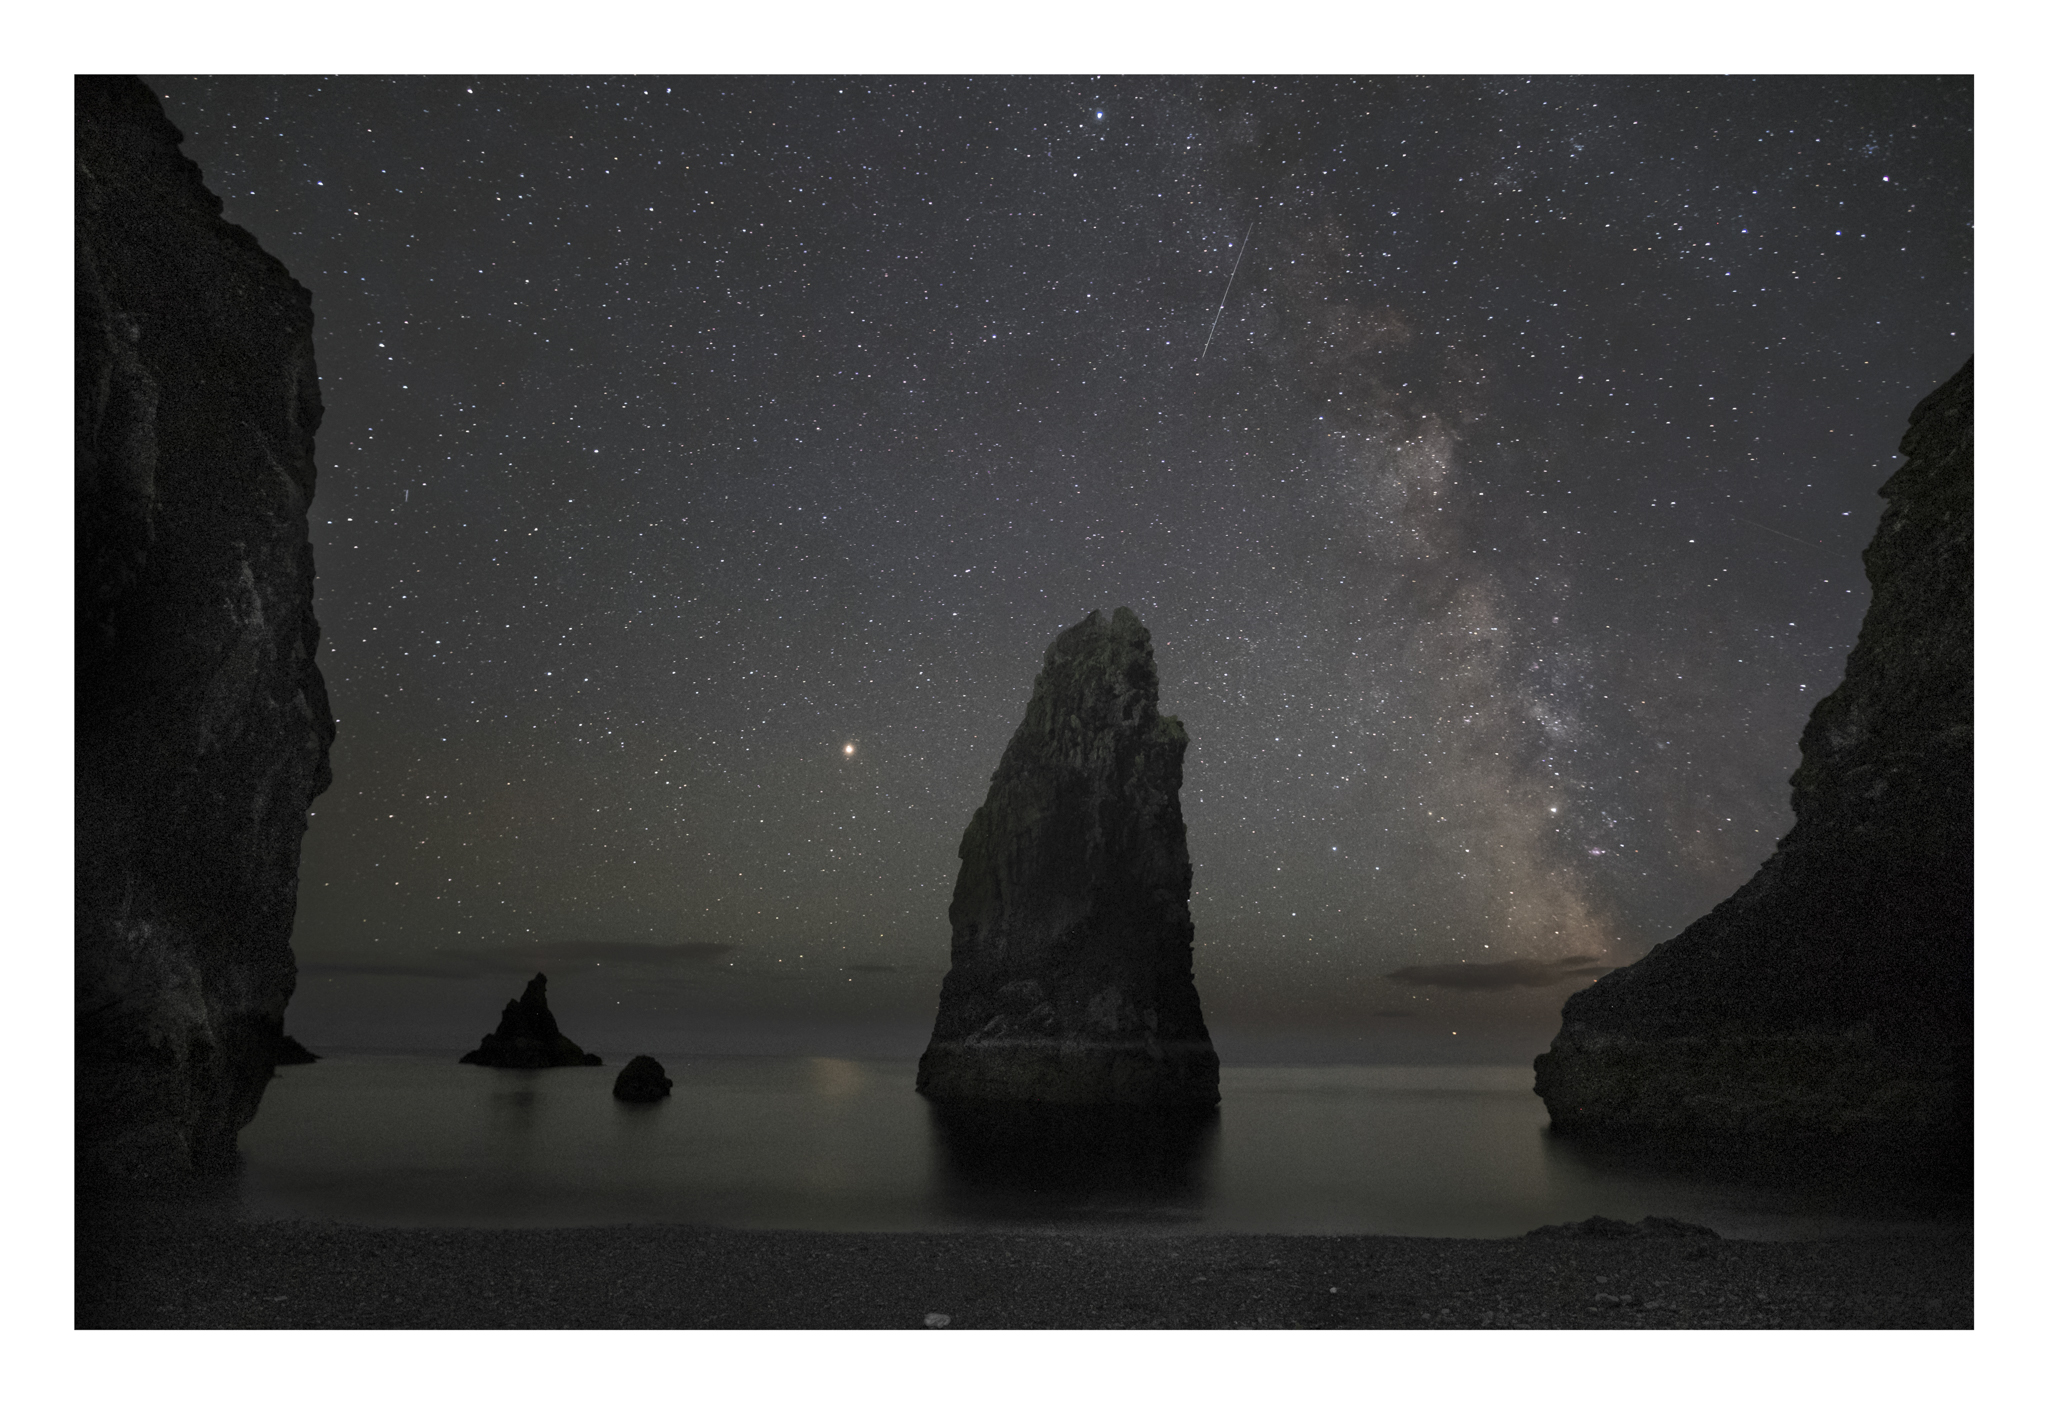 Milkyway 7 copper coast astrophotography